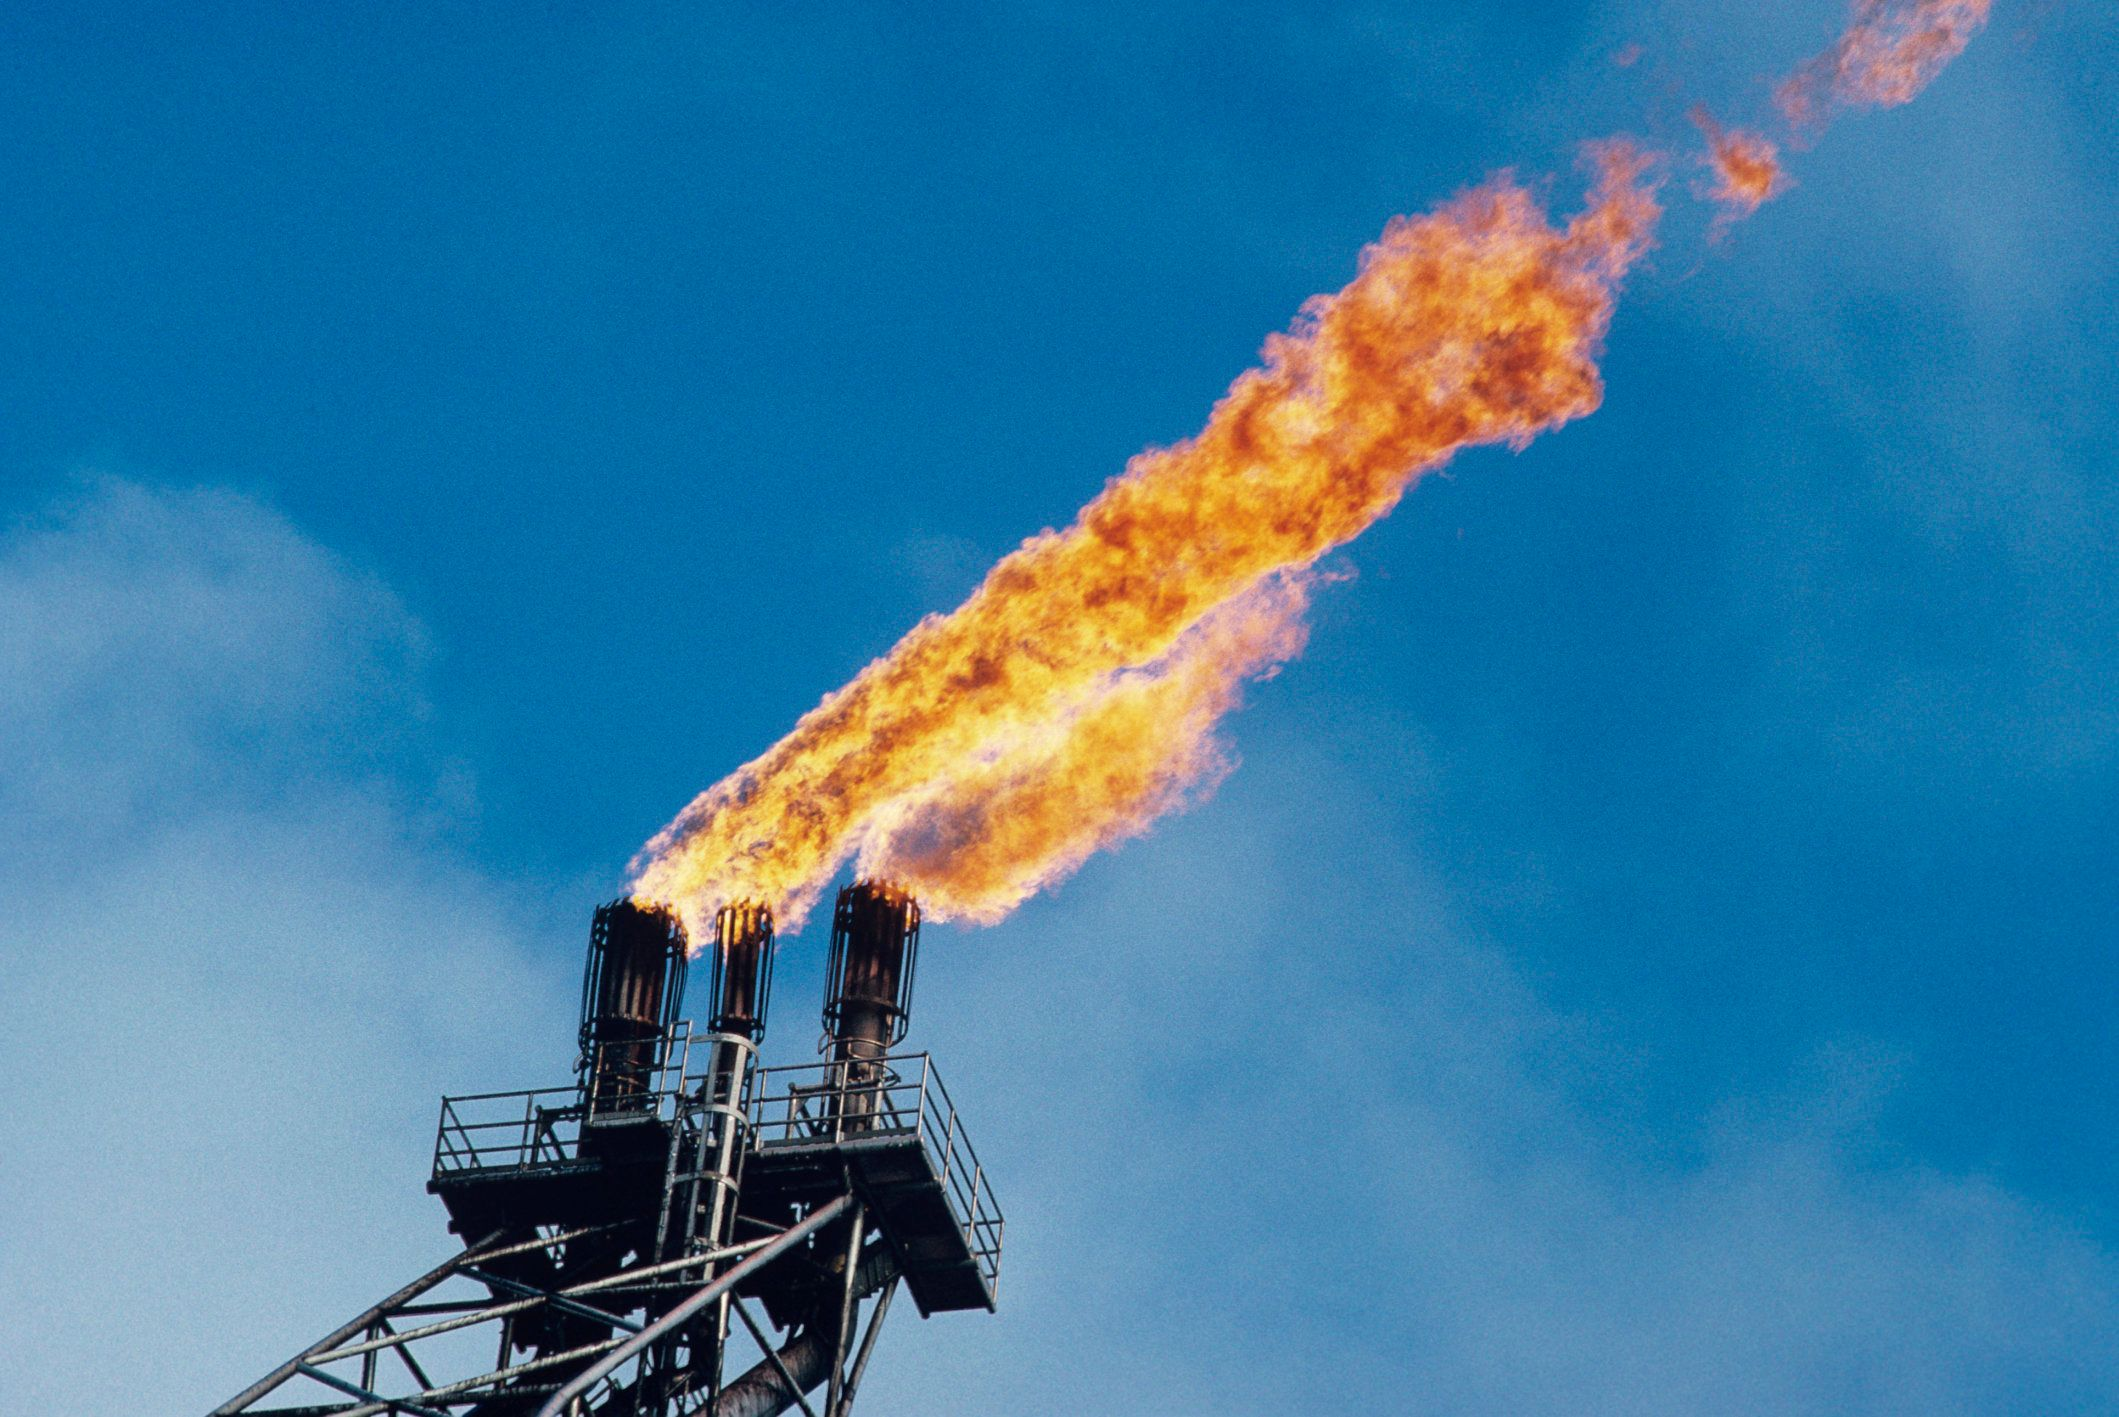 Offshore oil platform; 'burn off'  oil fume flames, low angle view